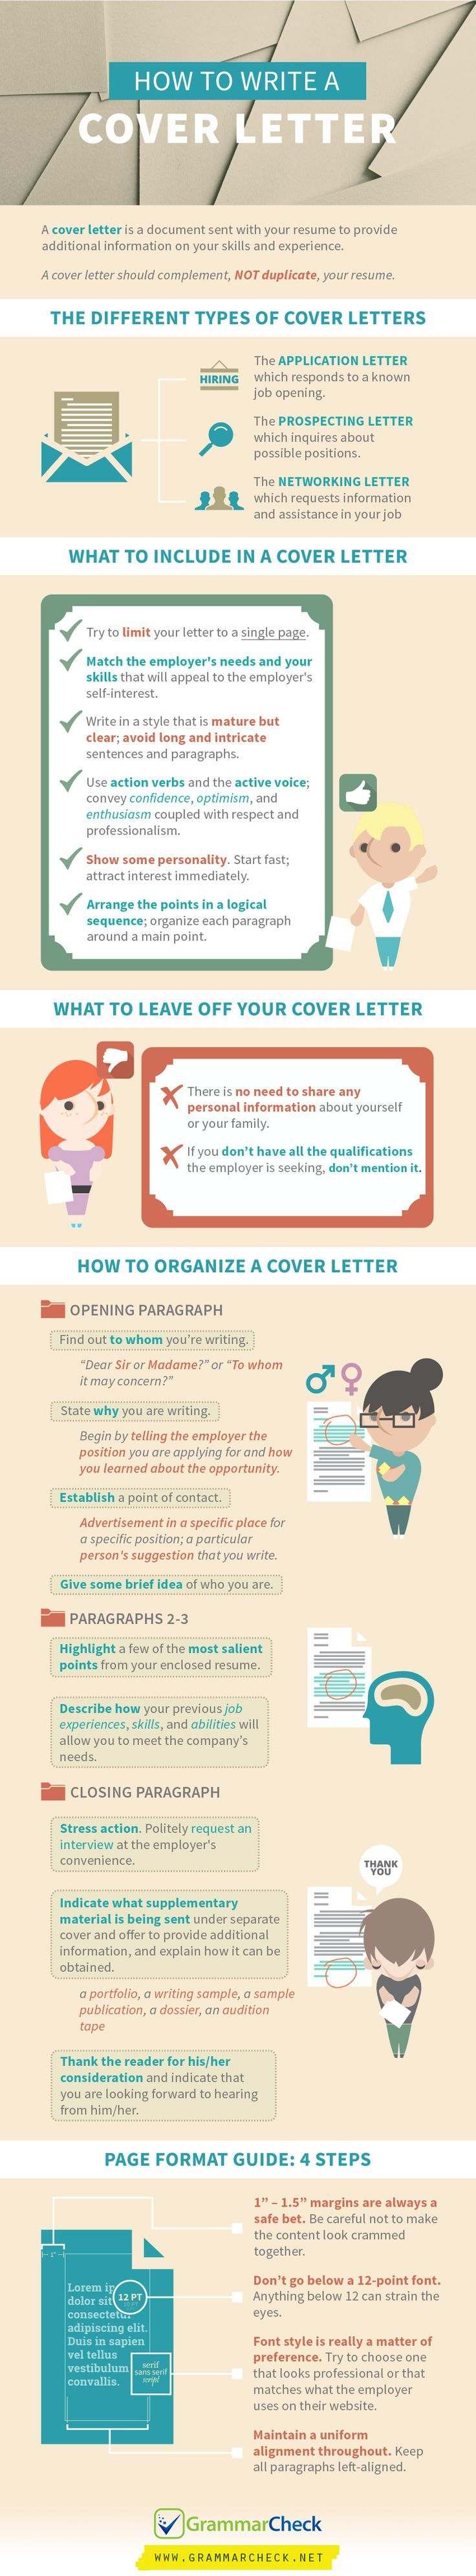 Cover Letter Advice Custom How To Write A Cover Letter  Cover Letter Tips  Cover Letters Design Decoration